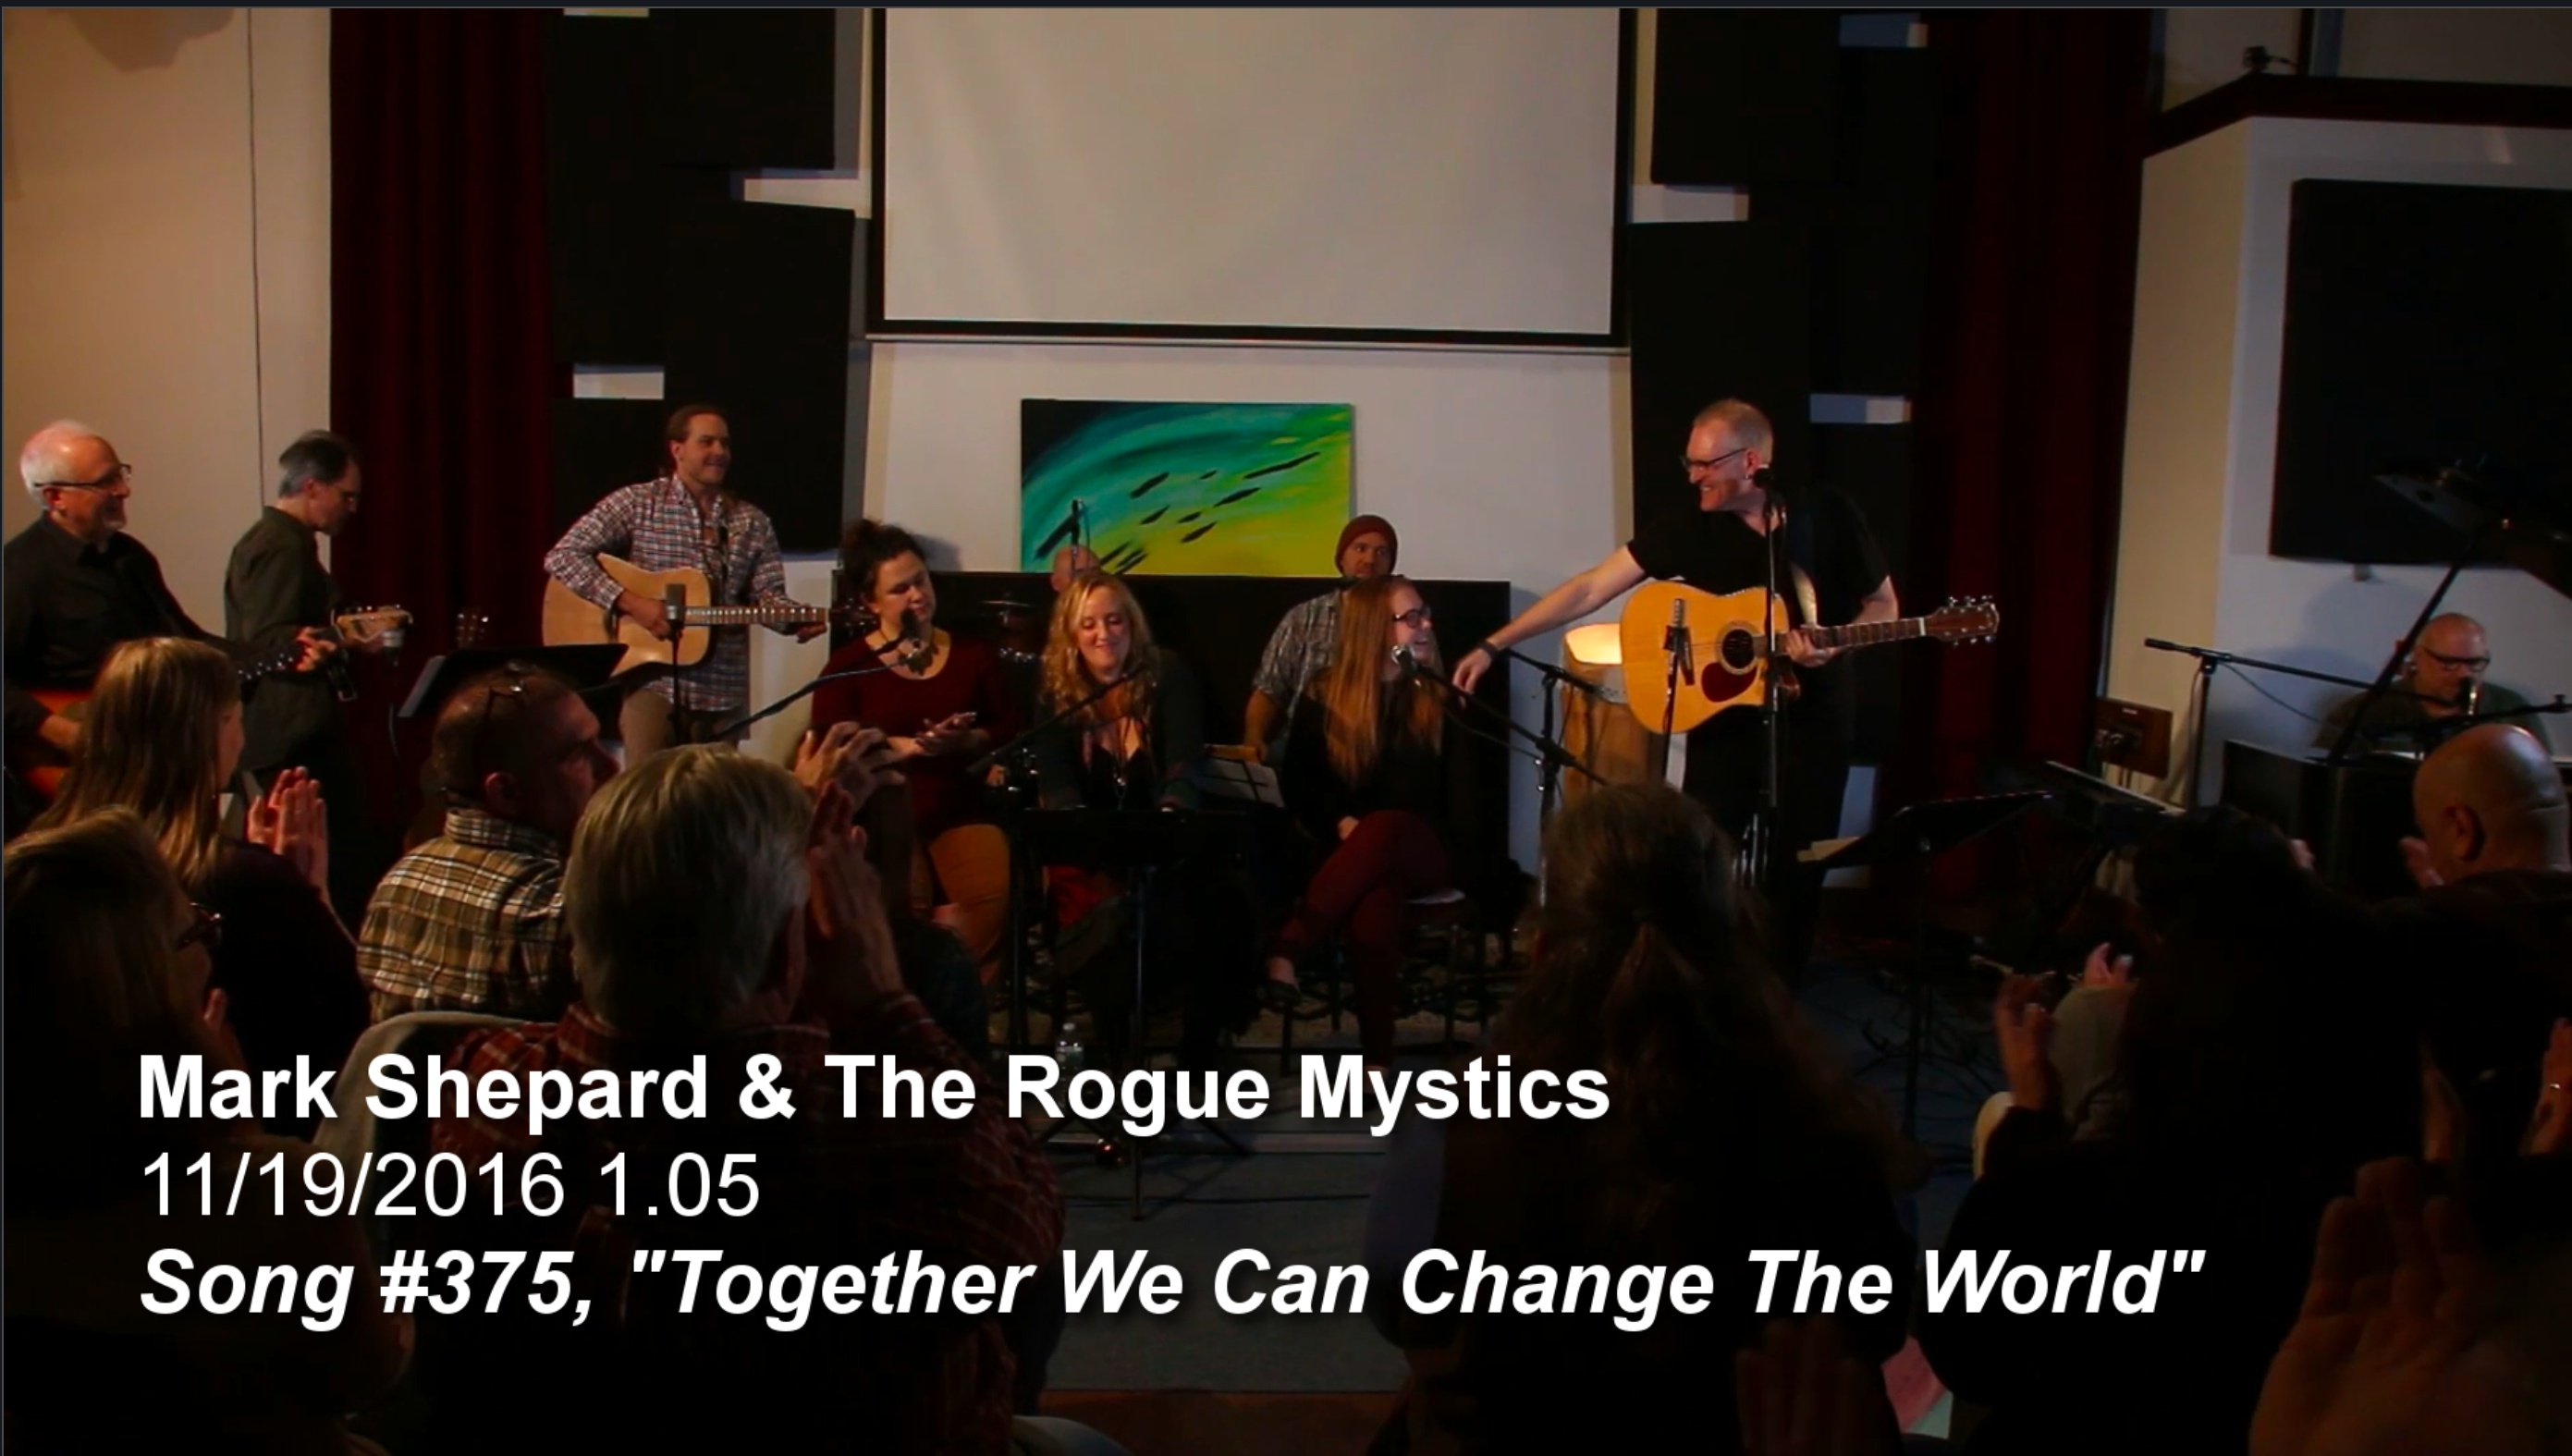 Together We Can Change The World LIVE With The Rogue Mystics #375